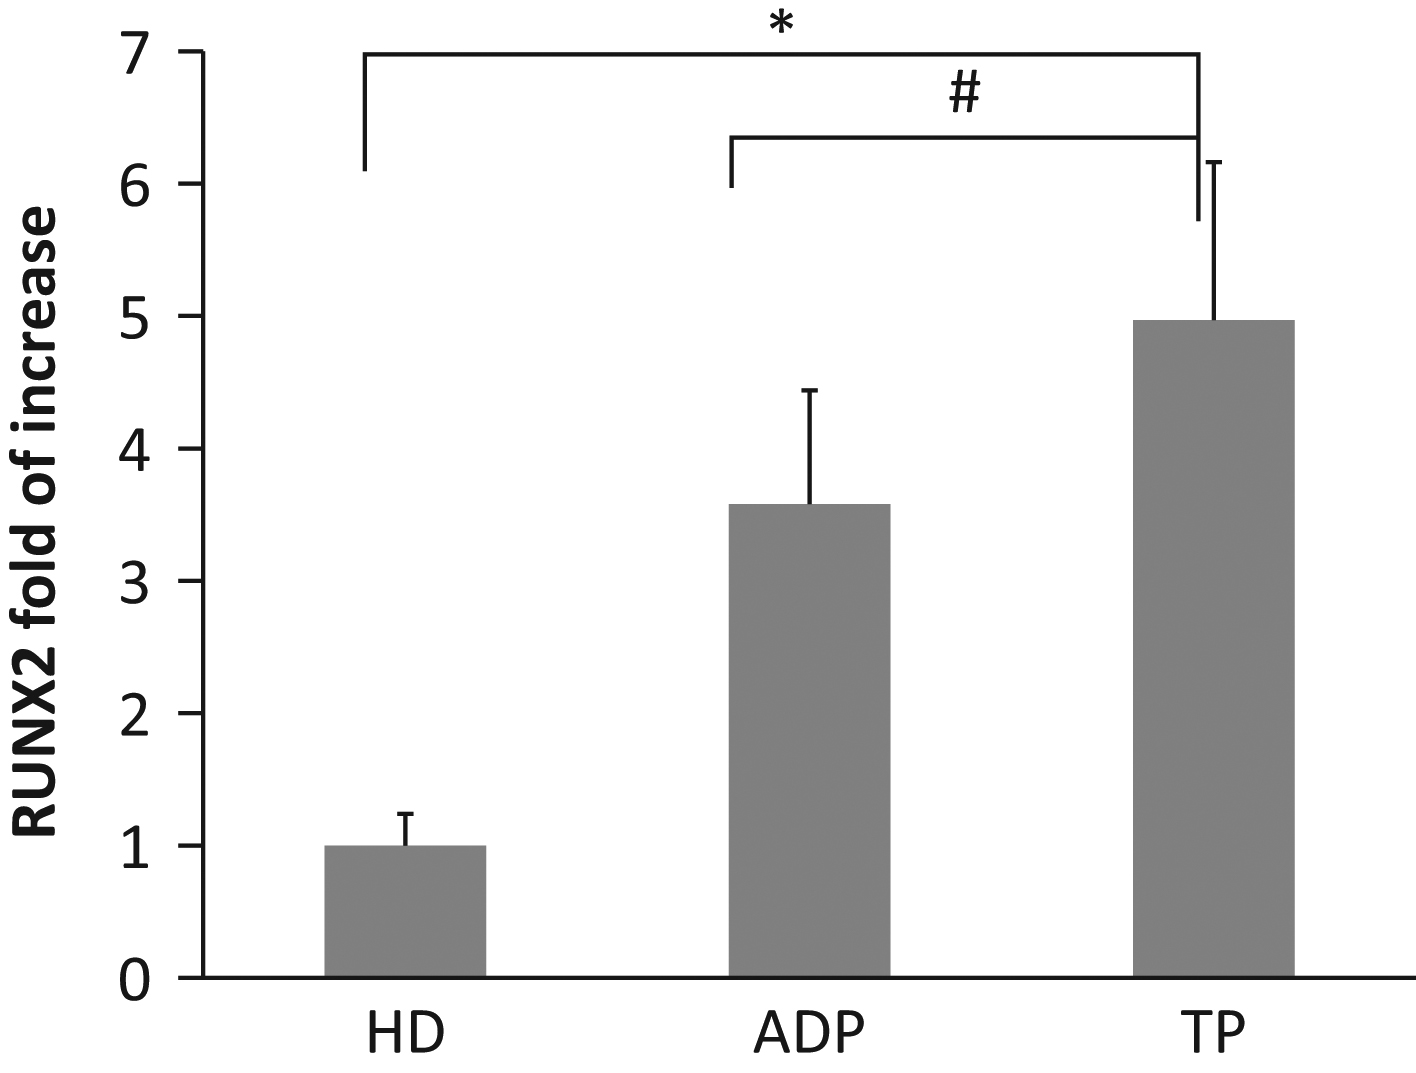 Runx2 overexpression compromises bone quality in acromegalic